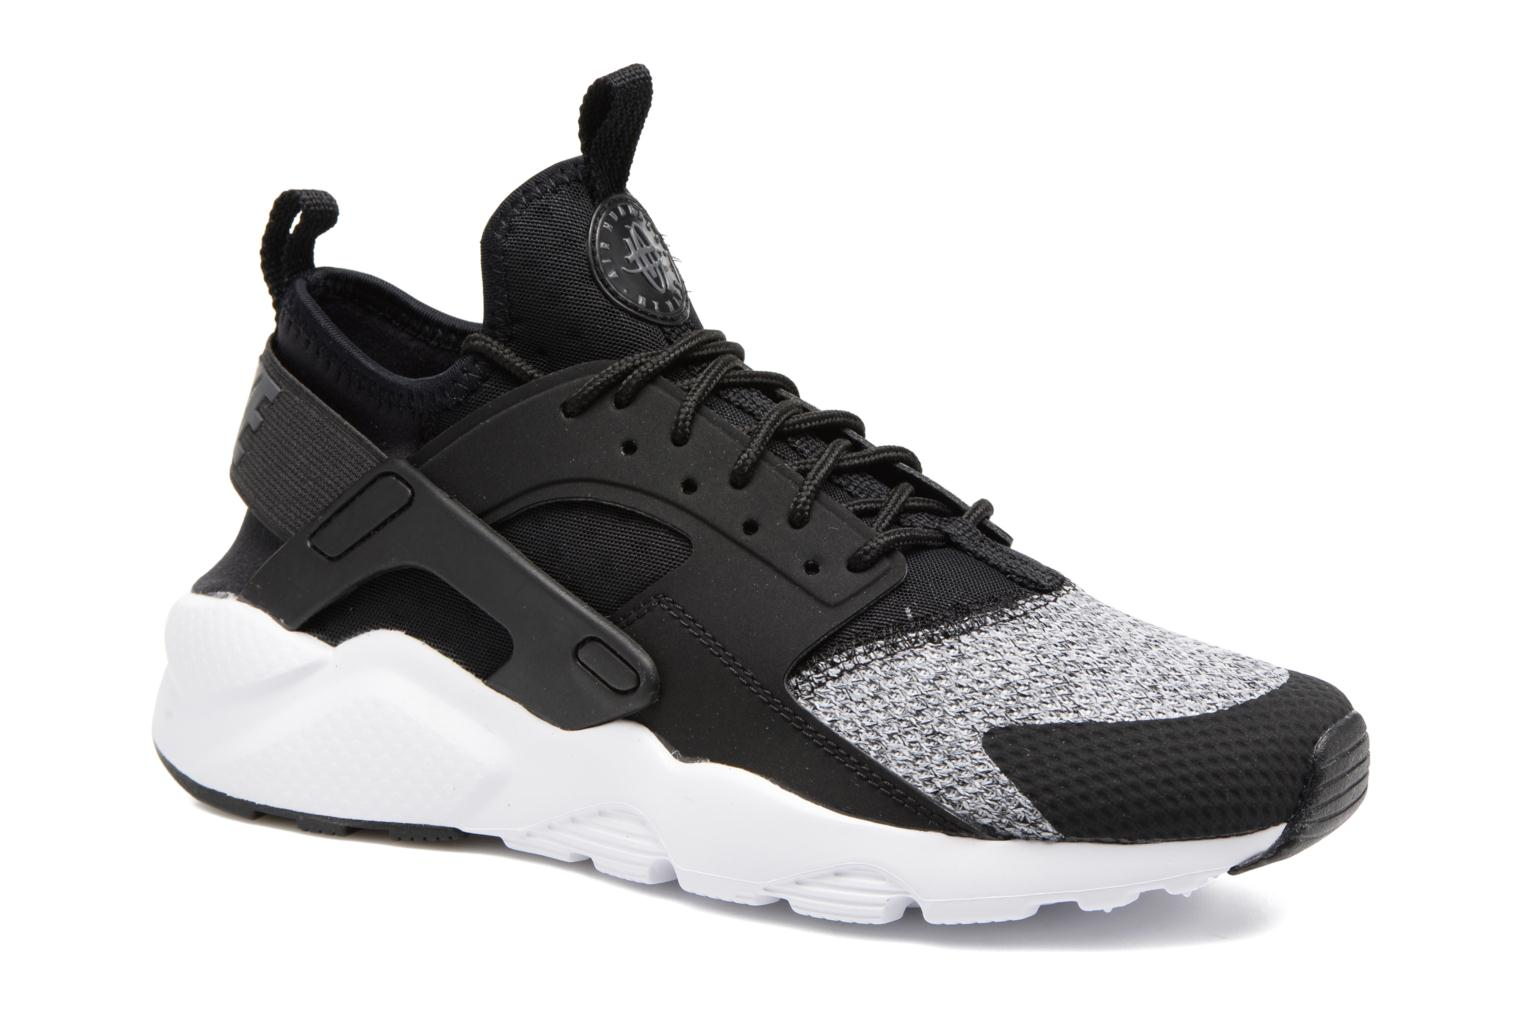 Black/Anthracite-White-Wolf Grey Nike Air Huarache Run Ultra Se (Gs) (Noir)